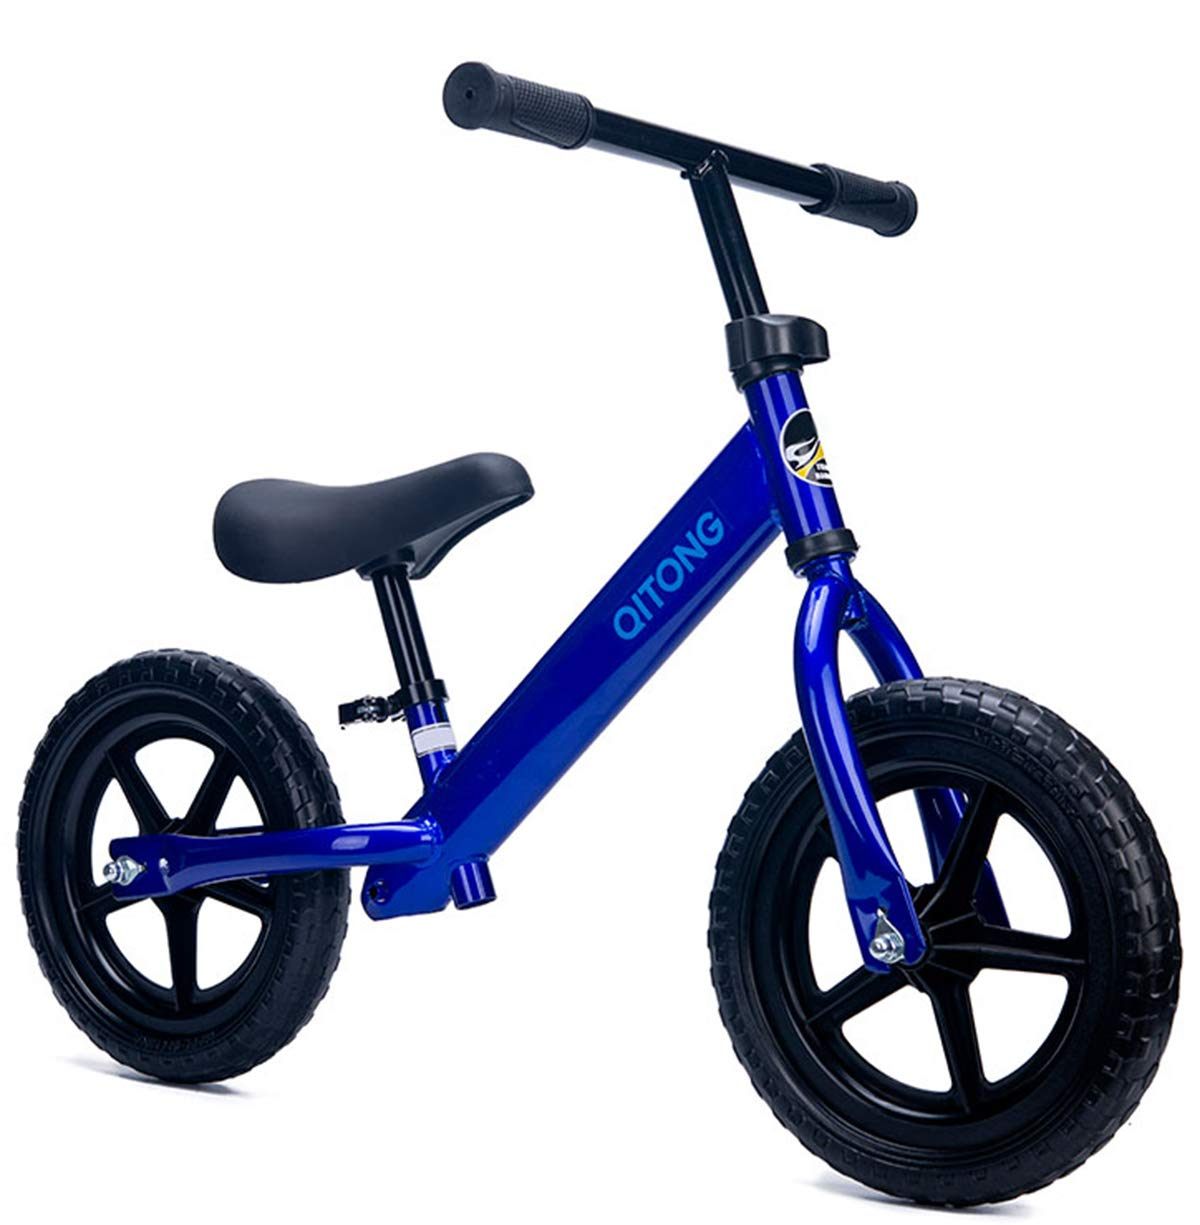 Gostorechoice Kids Balance Bike for Boys & Girls 1-5 Years Old No Pedal Learn to Ride Pre Bike W/EVA Wheels Adjustable Seat (Blue)